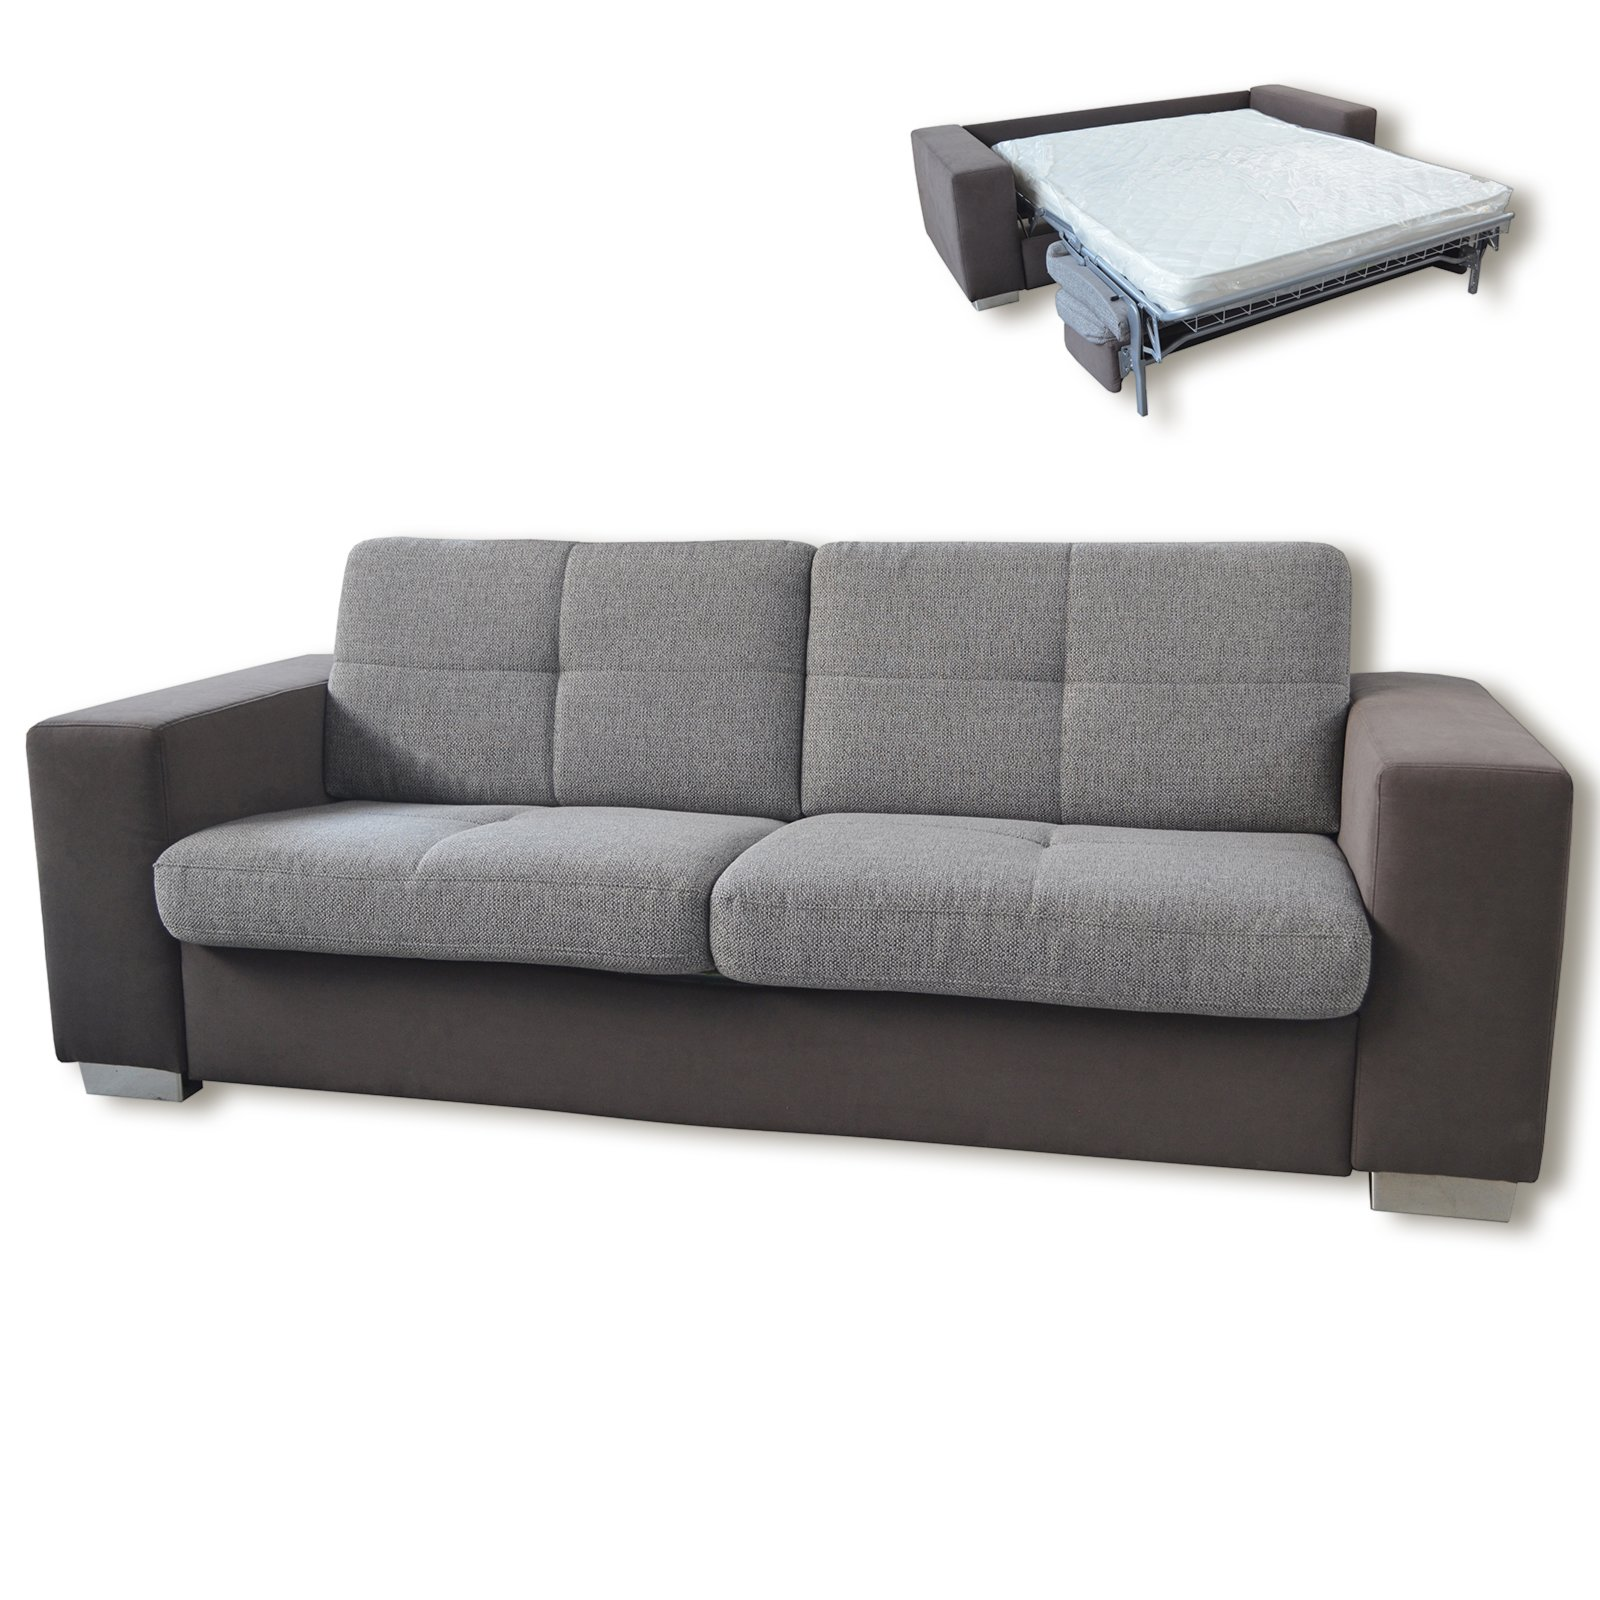 m bel roller schlafsofa my blog. Black Bedroom Furniture Sets. Home Design Ideas